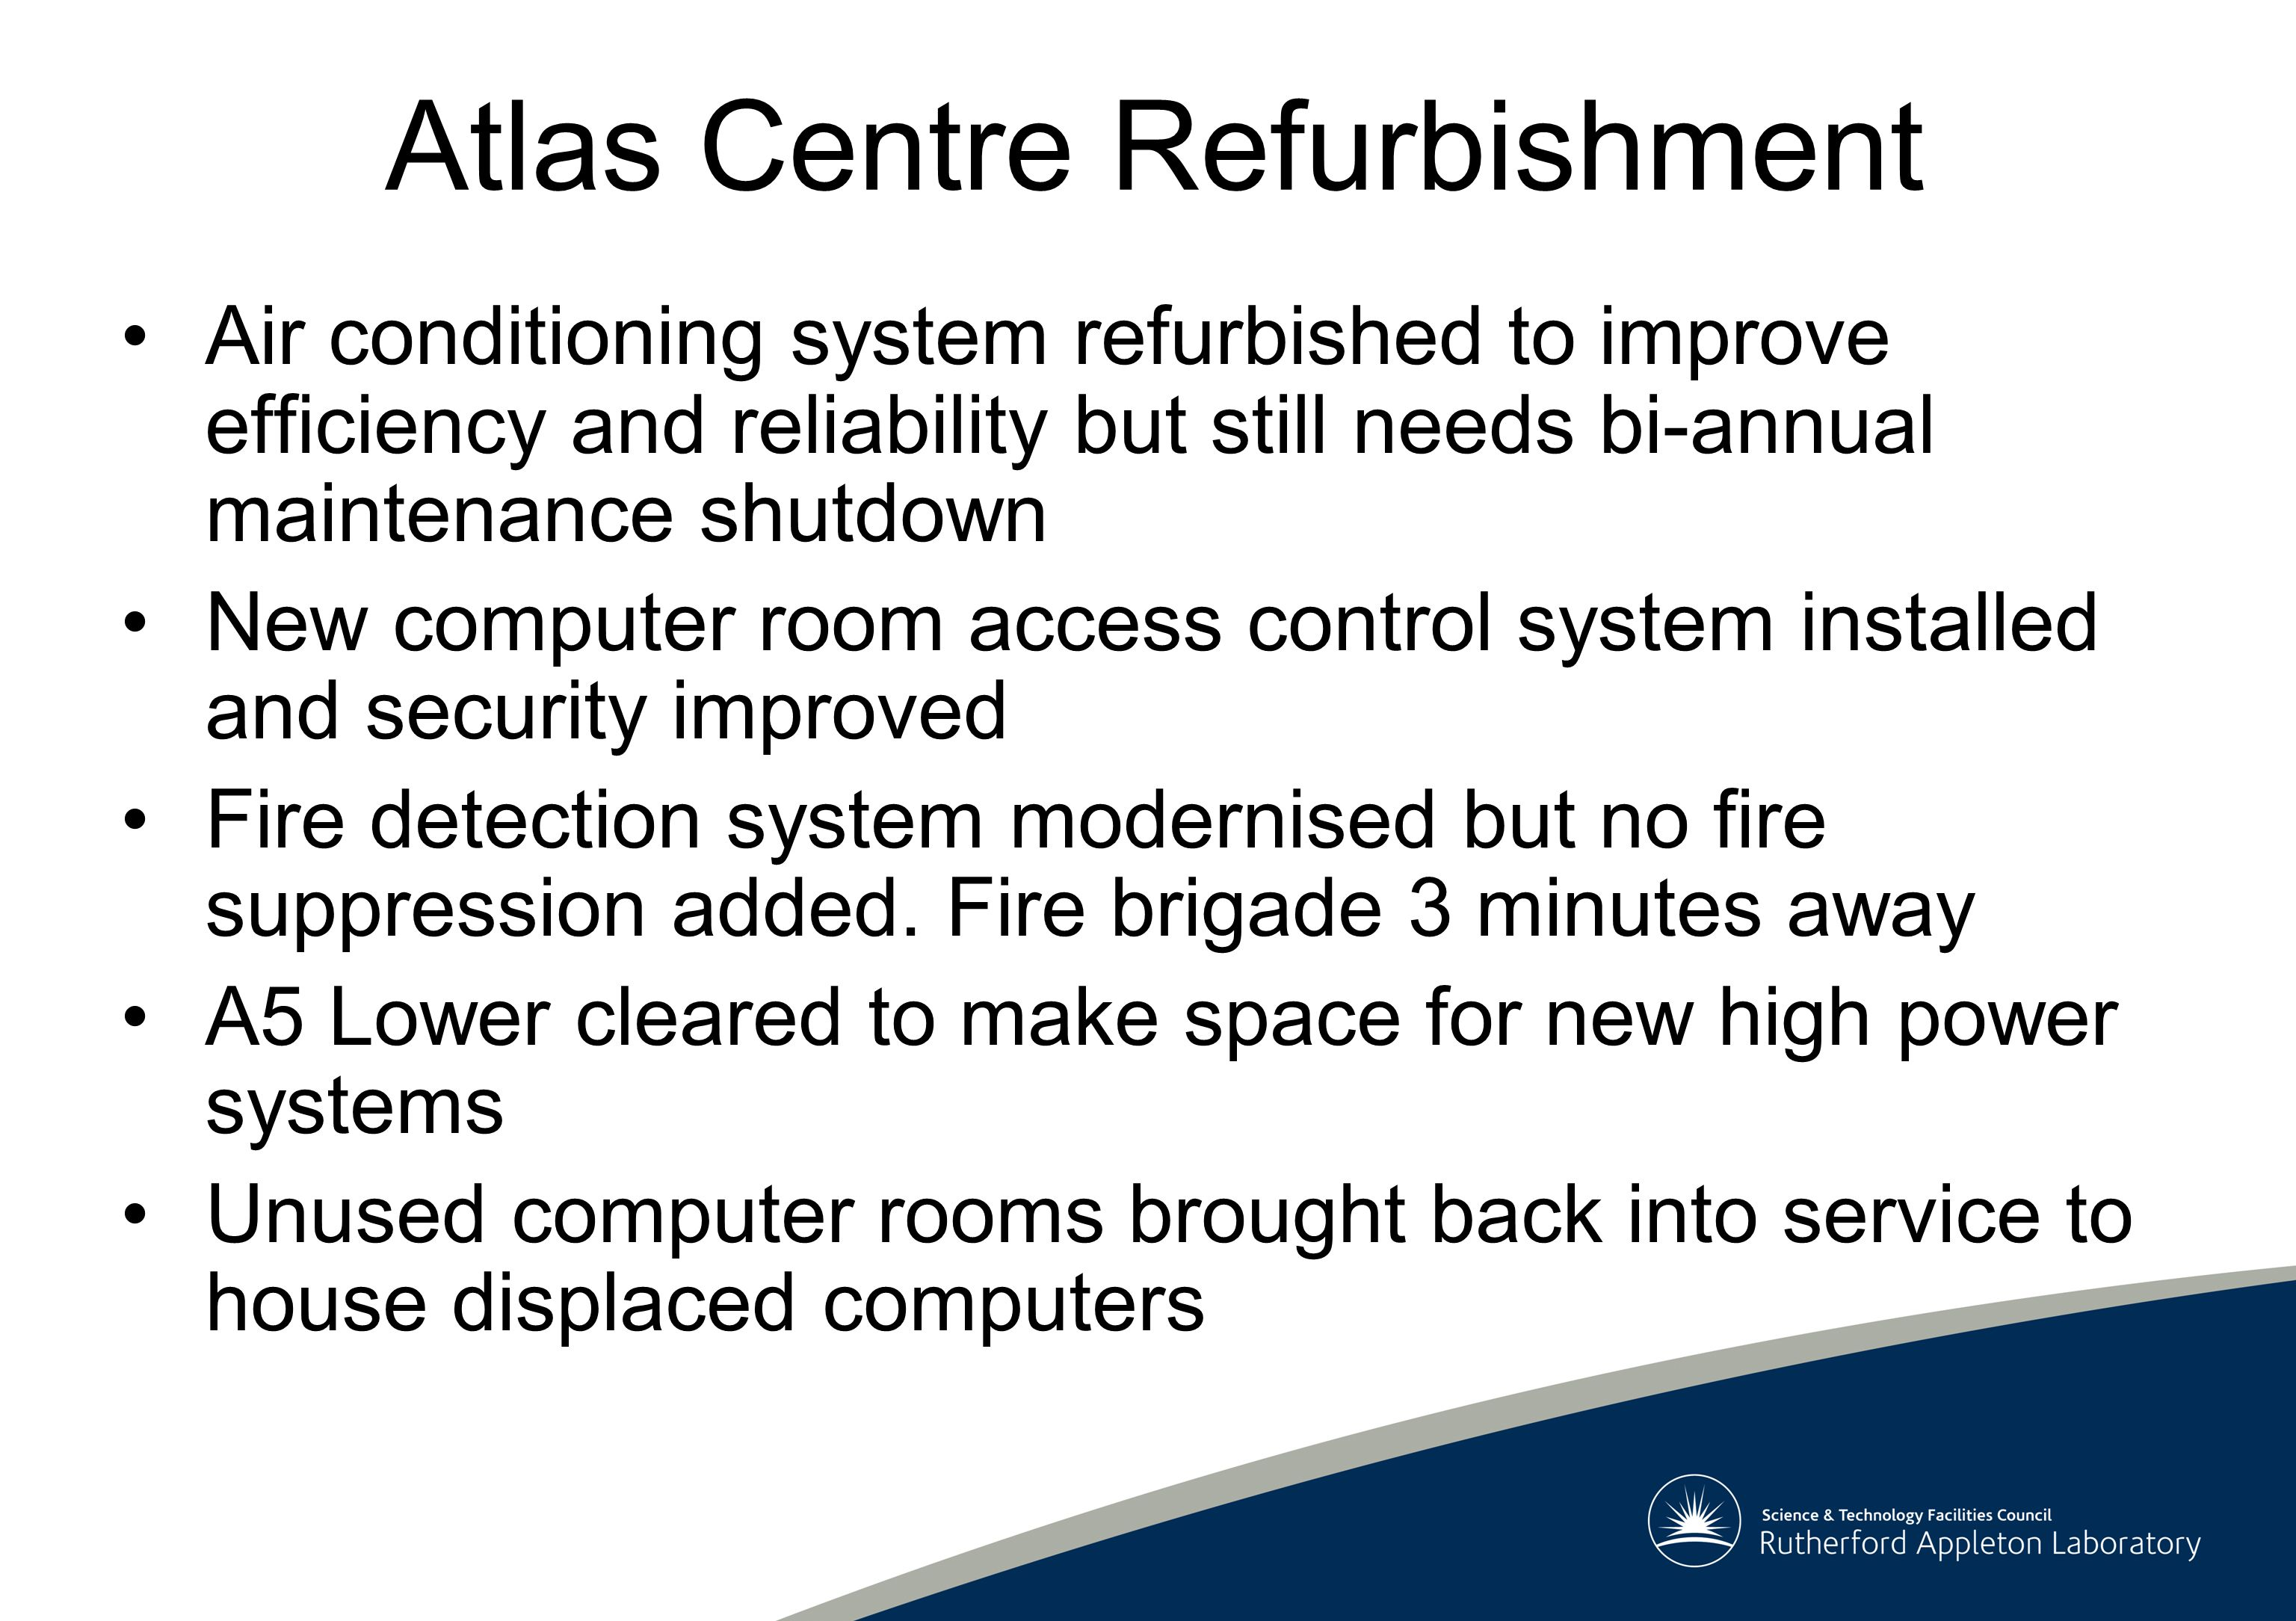 Atlas Centre Refurbishment of A5 Lower All new high power systems to go in this room Floor strength augmented to support heavy racks New 960kW air conditioning system installed solely for this room with independent units so can run 24 * 7 Power Density raised from 0.5kW/m2 to 1.9kW/m2 860kW of additional power installed for computers with more available if need be Security improved